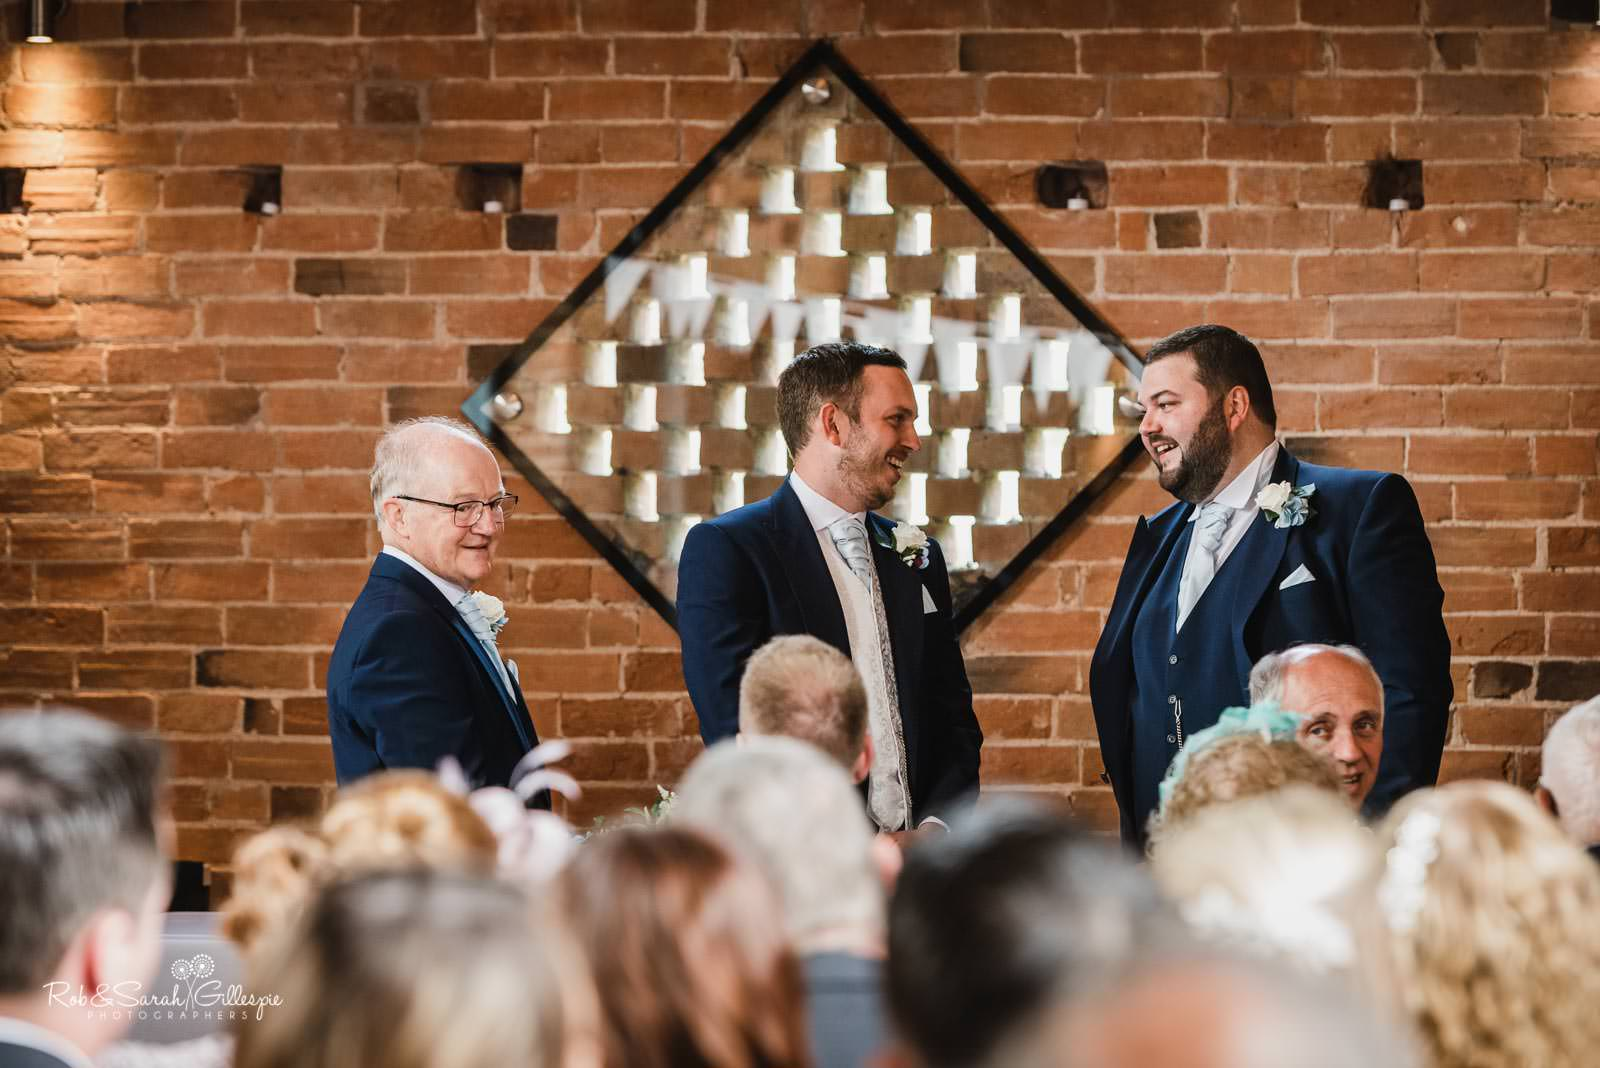 Groom, best man and dad chat before wedding at Wedding ceremony at Swallows Nest Barn